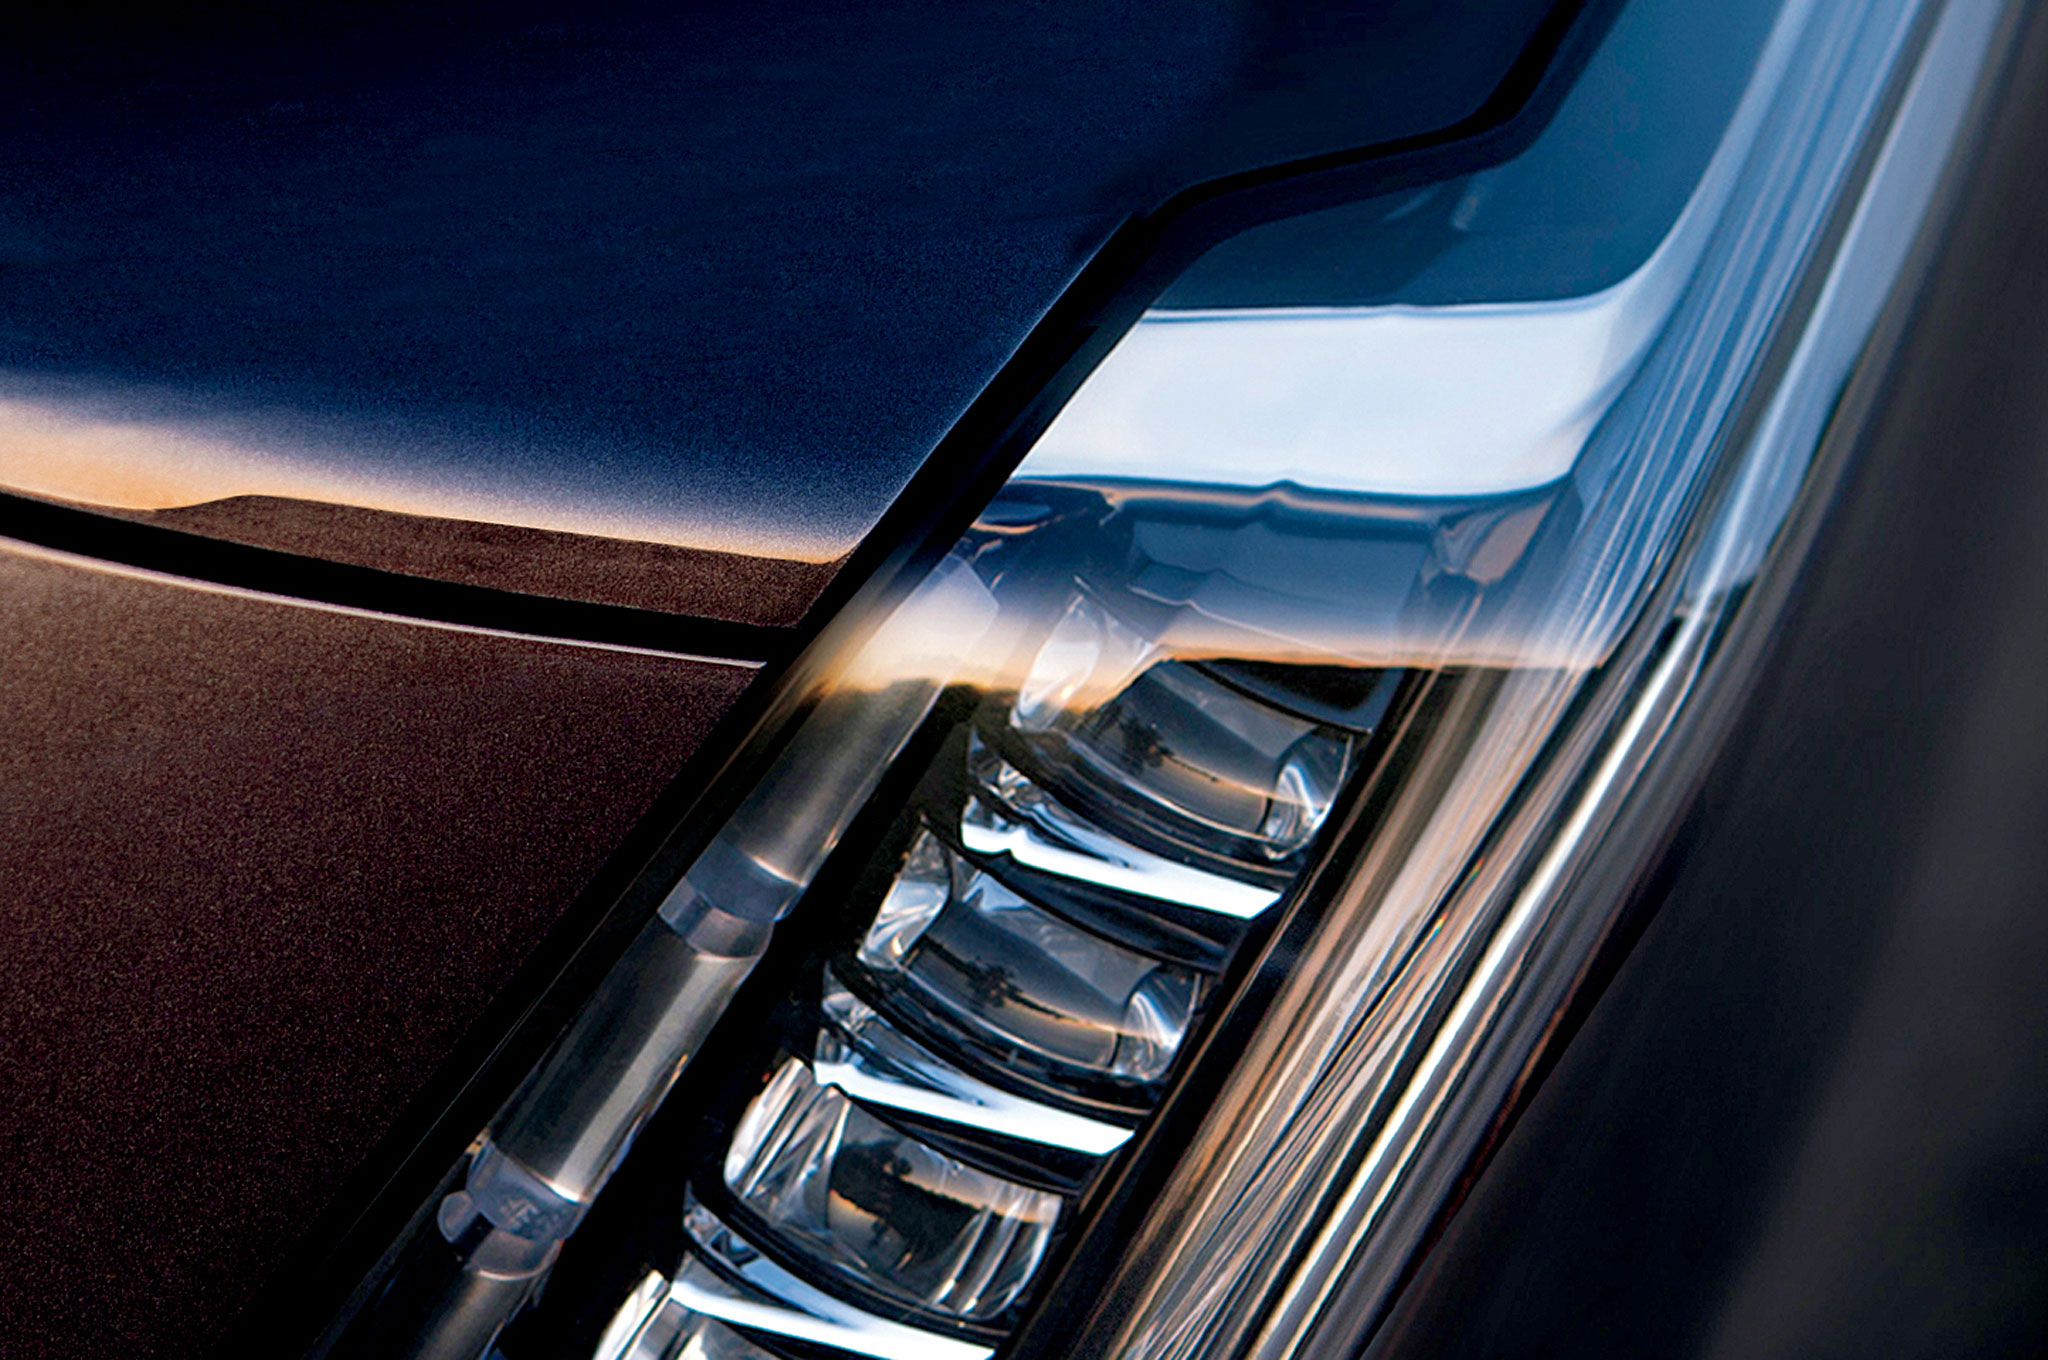 2015 Cadillac Escalade S Led Headlight Teased W Videos Motortrend